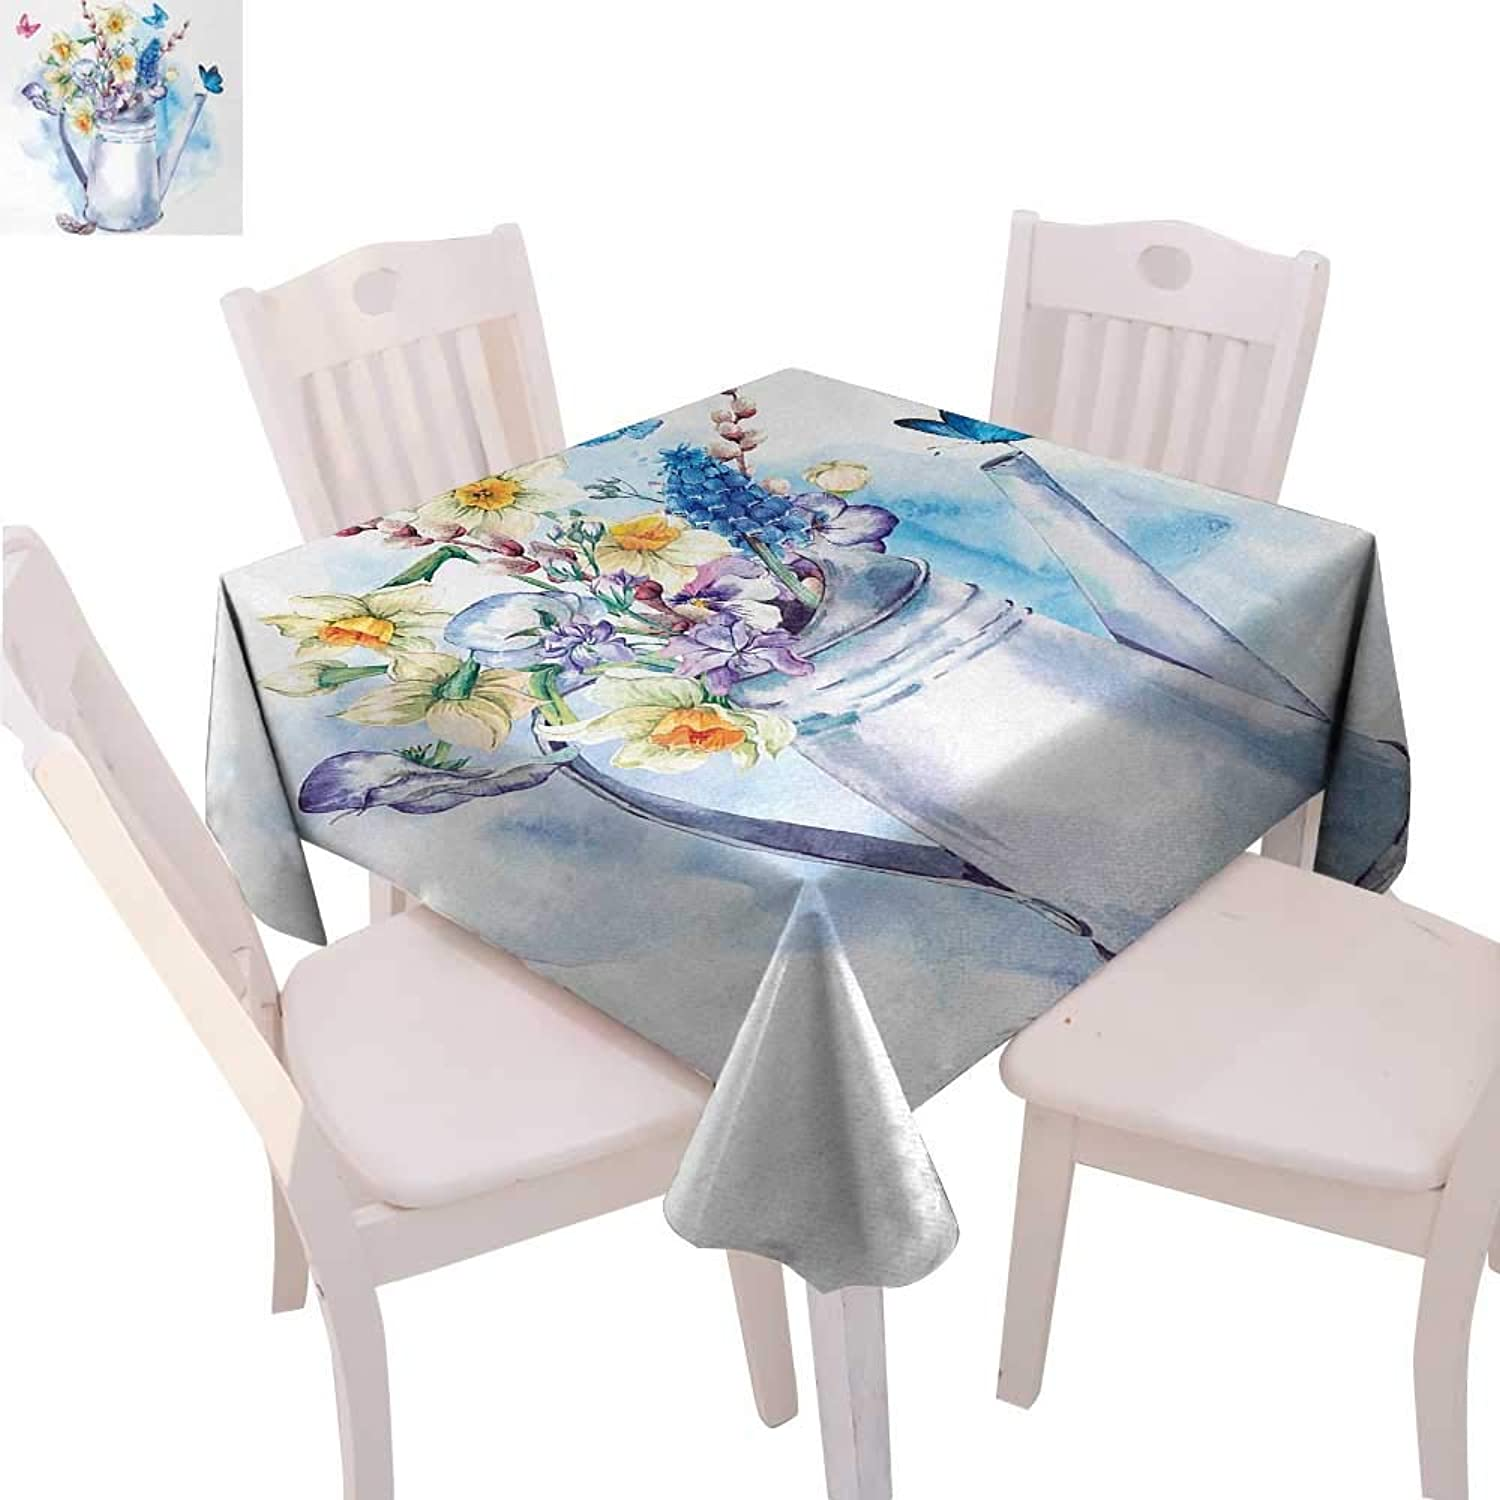 CobeDecor Daffodil Washable Tablecloth Summer Bouquet with purples PussWillows and Butterflies in OldFashion Watering Can Waterproof Tablecloths 70 x70  Multi